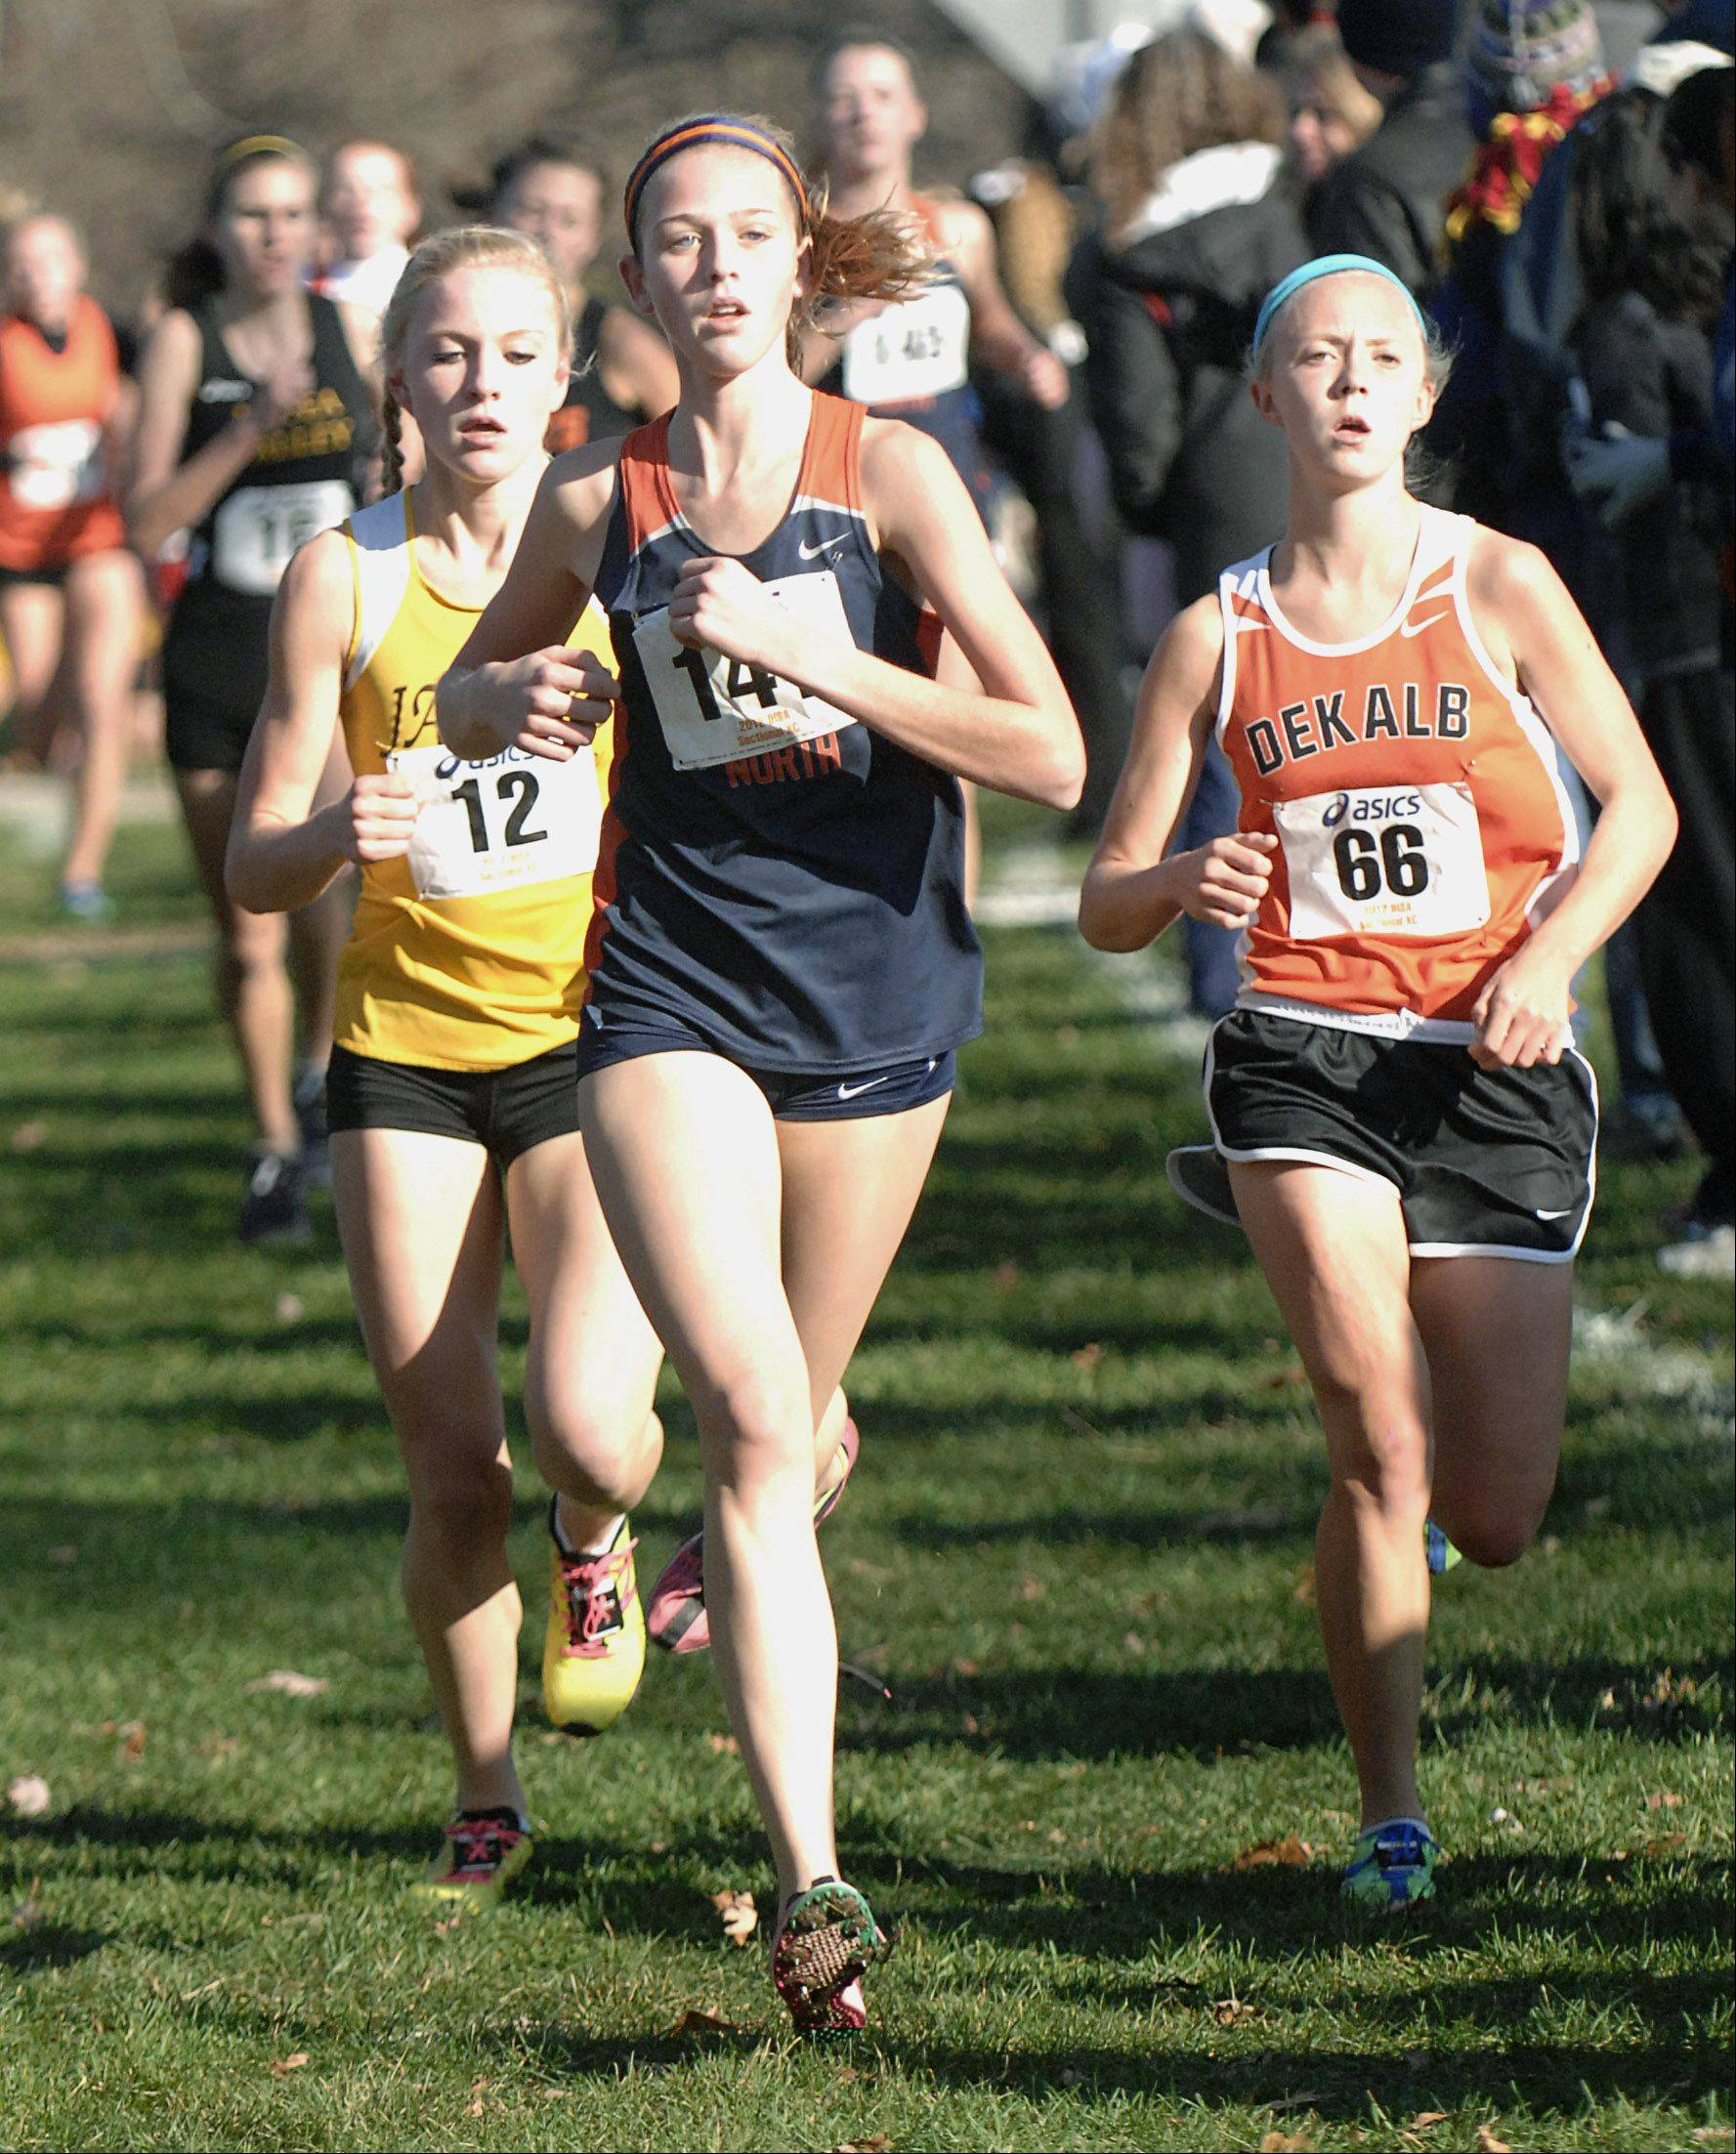 Naperville North's Elly DeTurris leads the pack near the one and a half mile mark in the St. Charles East cross country sectional at LeRoy Oakes in St. Charles on Saturday, October 27.